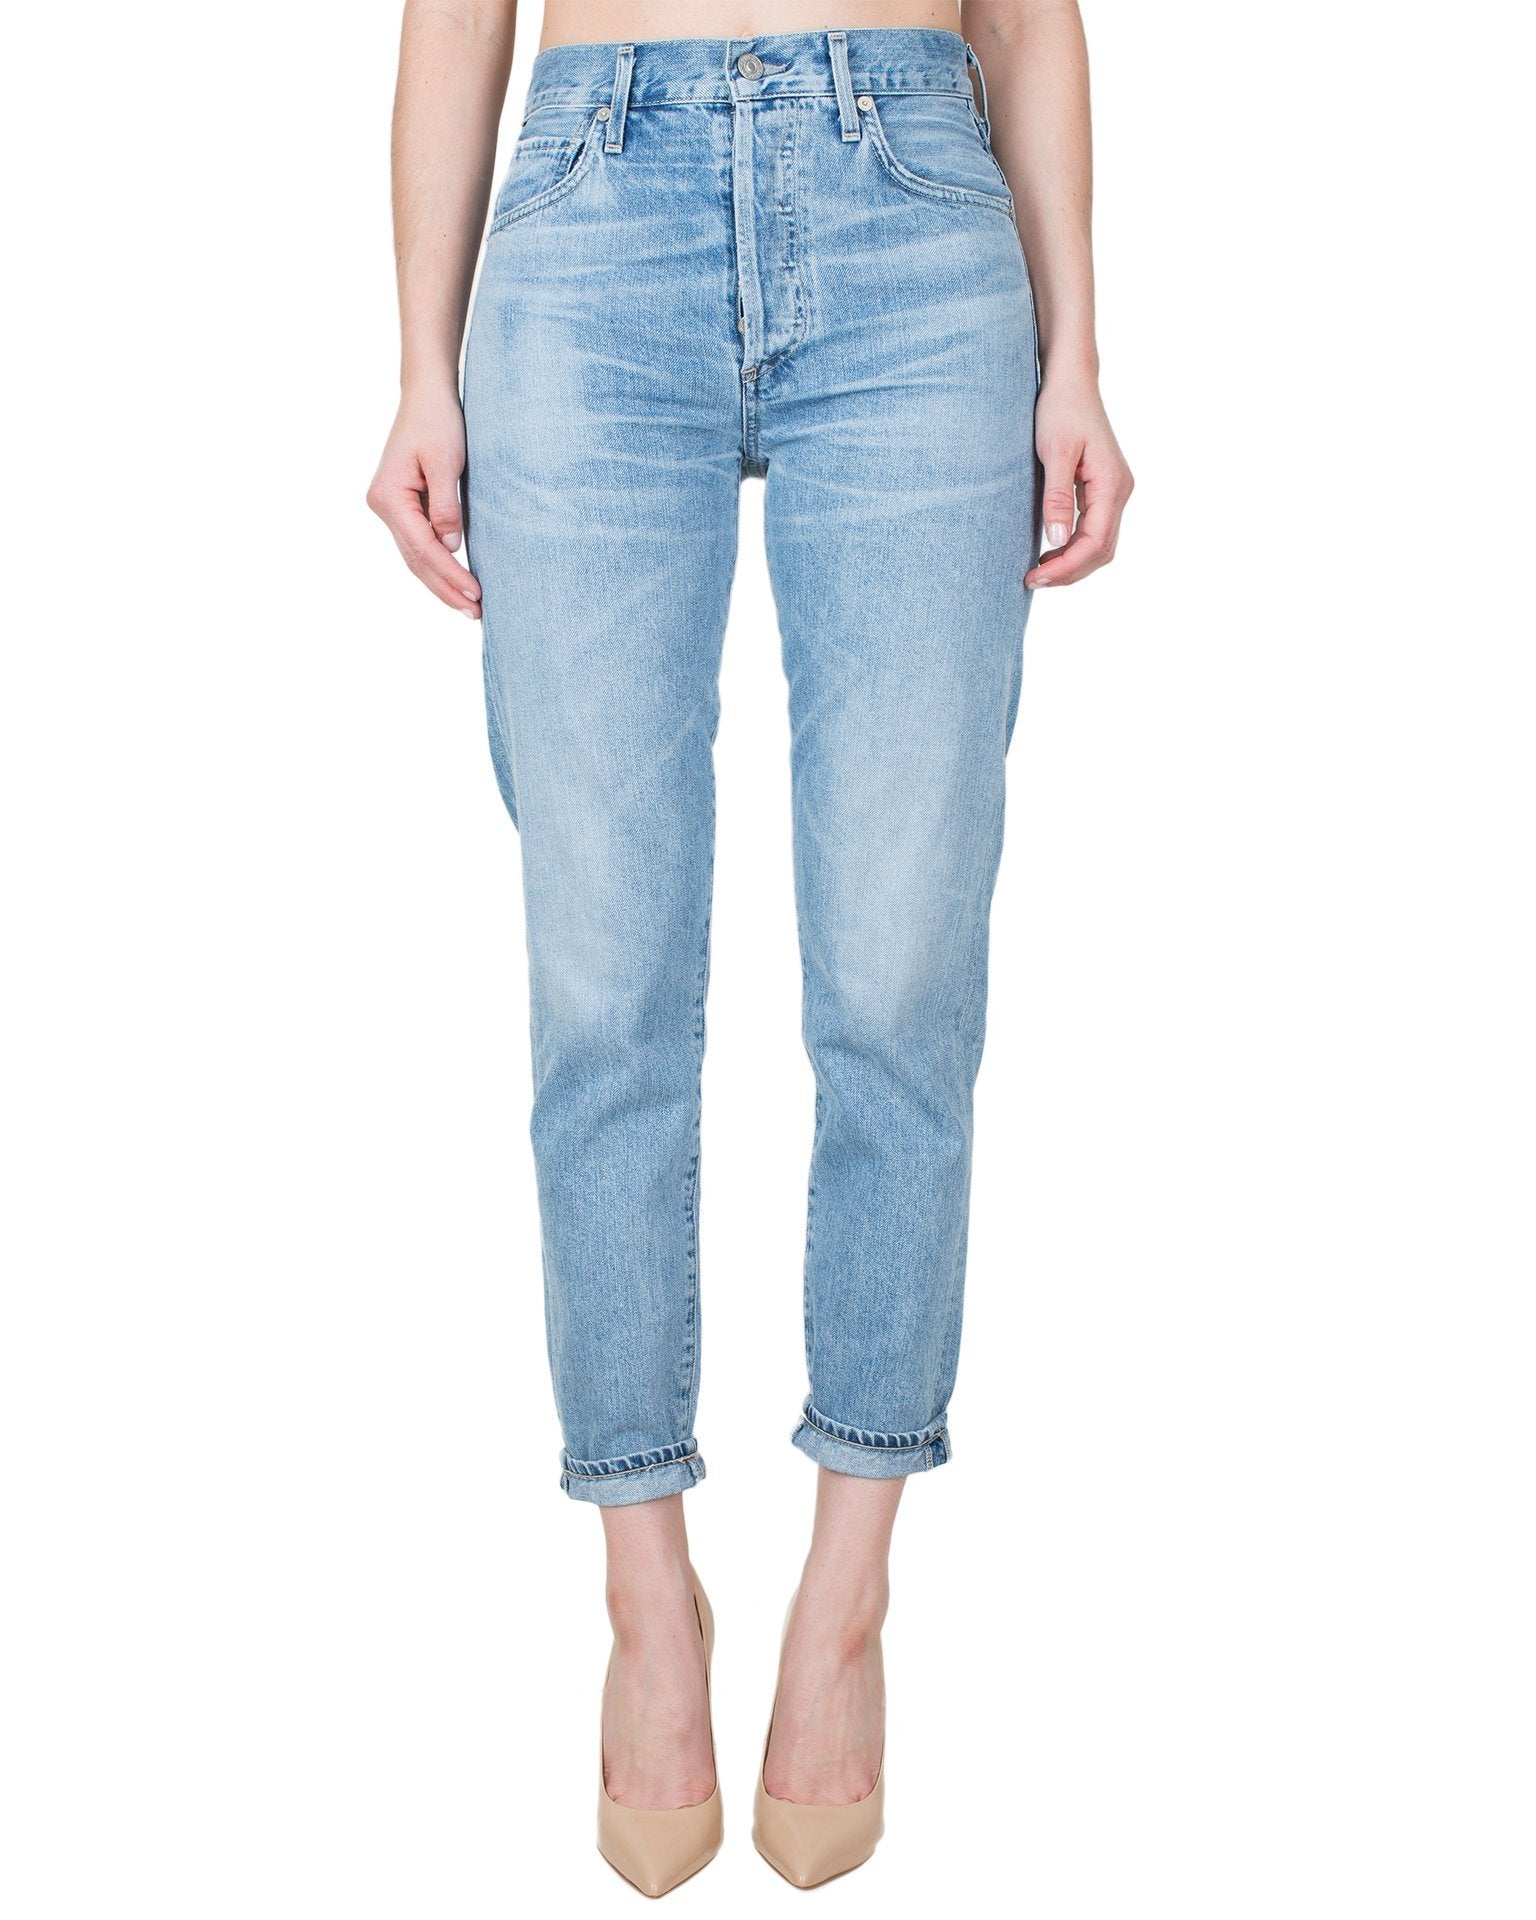 Citizen's of Humanity Denim Sunday Morning / 25 Liya High Rise Classic Fit